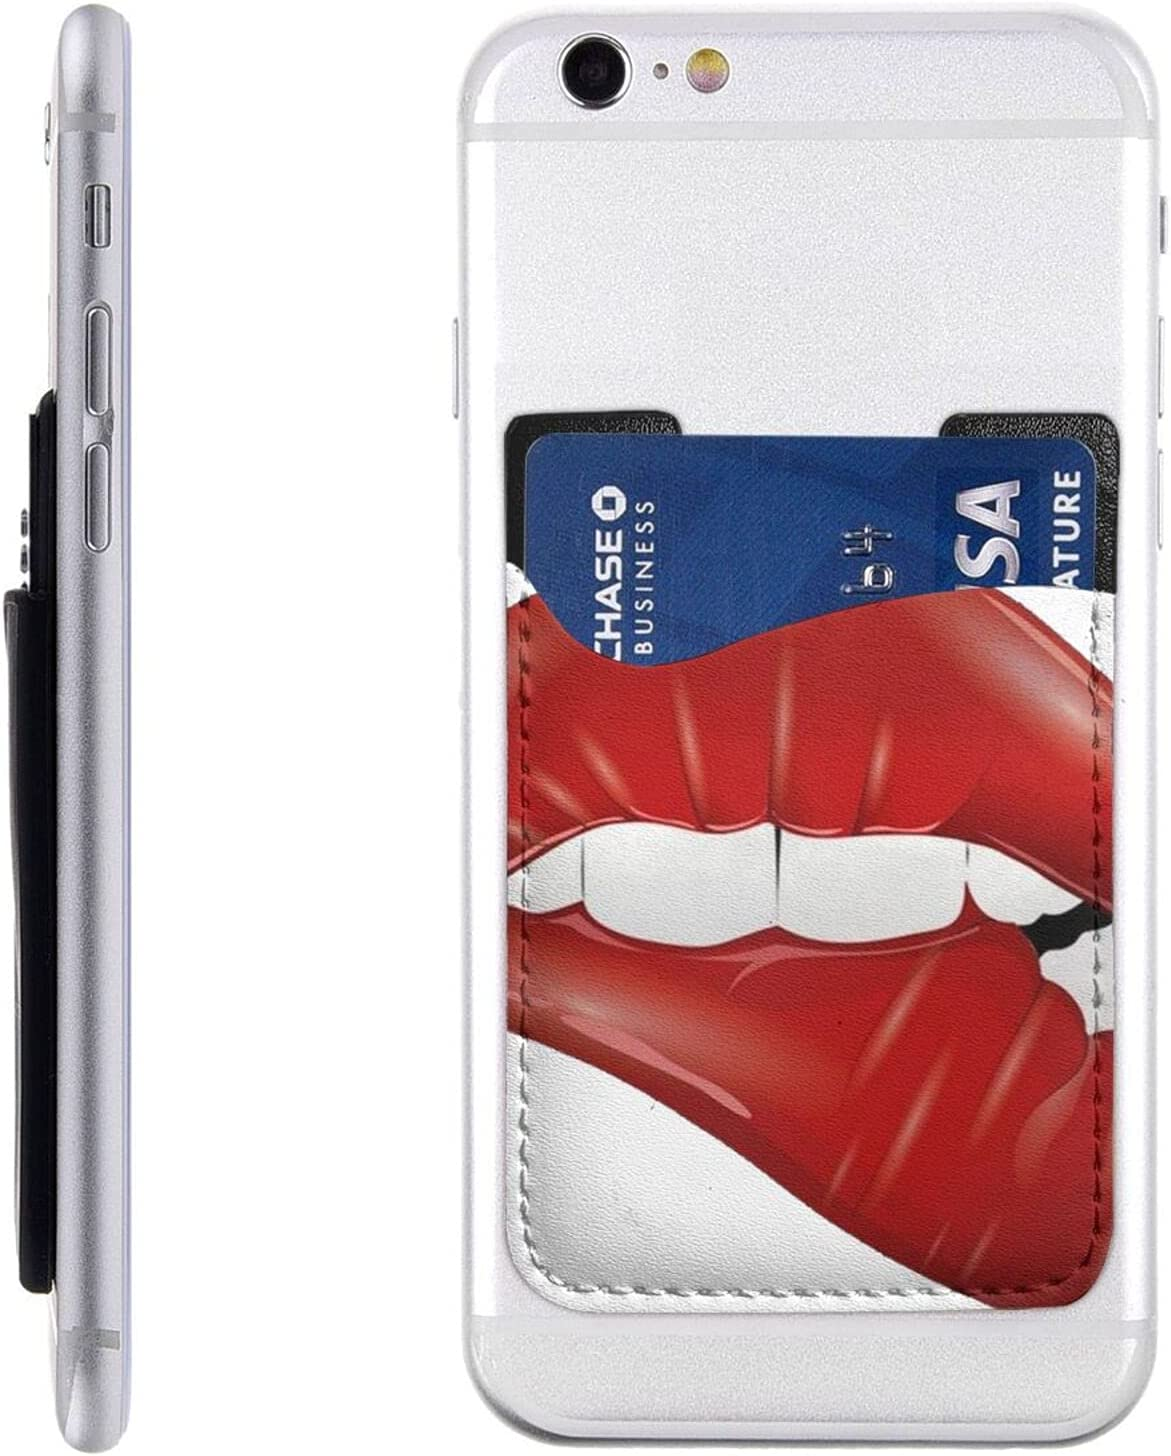 Lip Phone latest Card Holder Cell Stick Wallet Mob Max 89% OFF Sleeve On